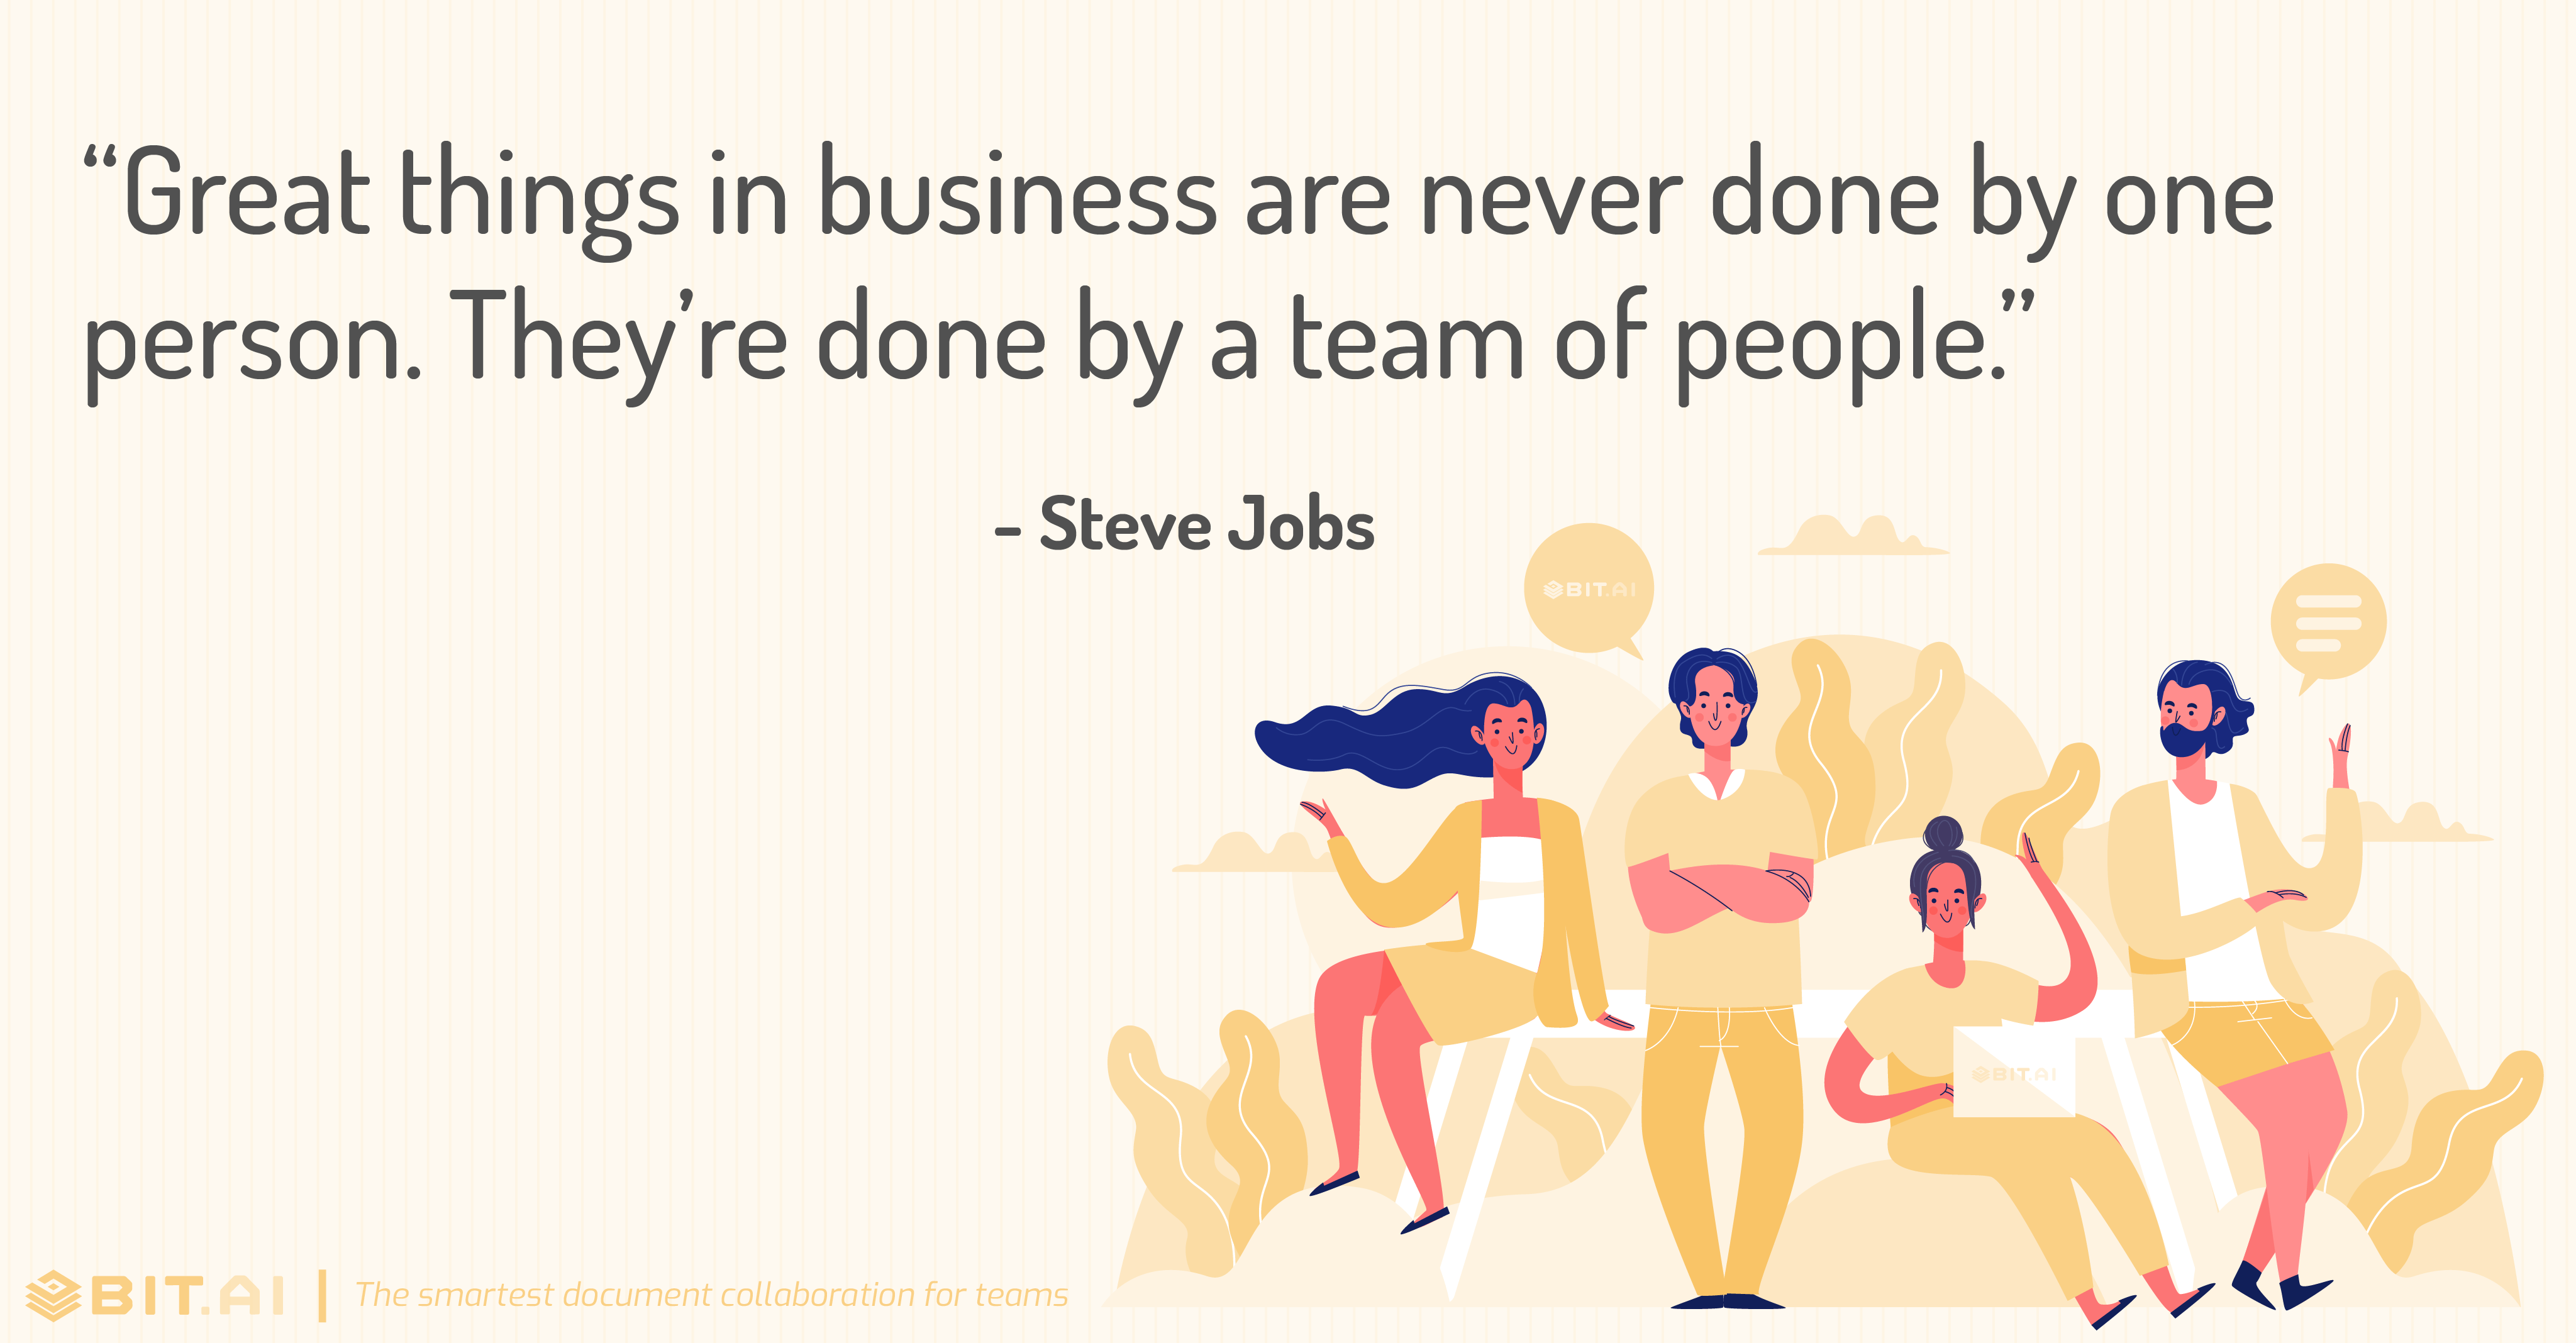 """Great things in business are never done by one person. They're done by a team of people."" - Steve Jobs"